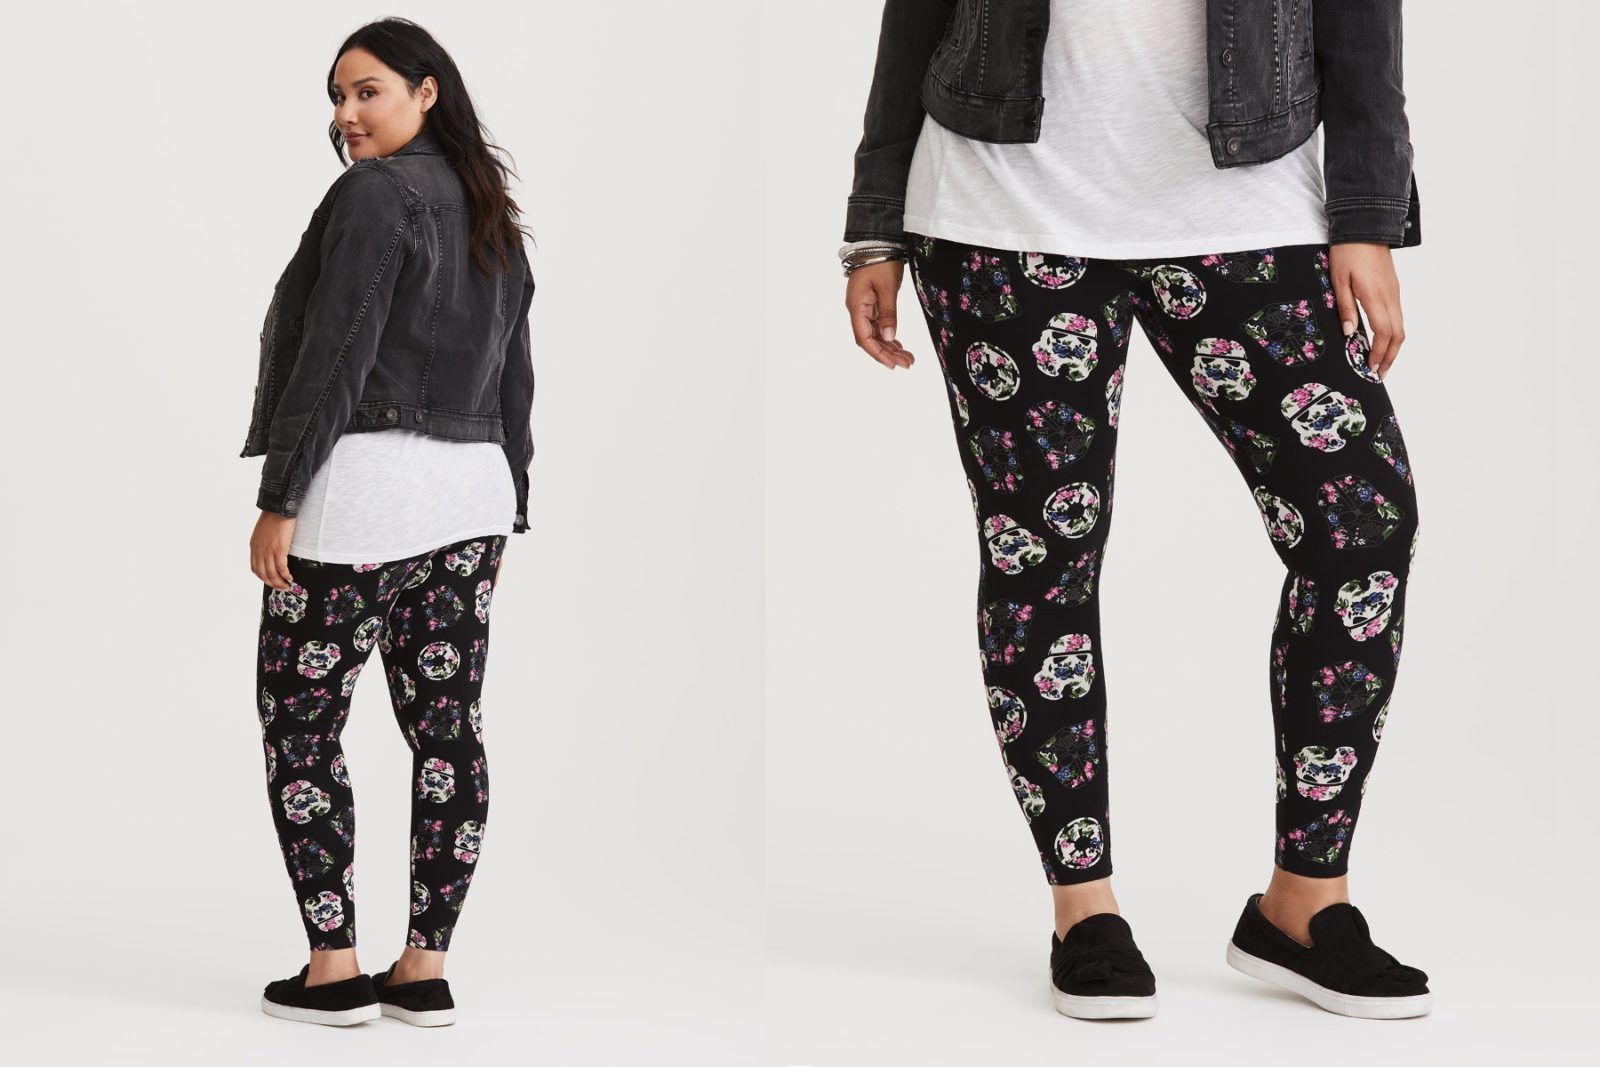 Women's Imperial Floral Leggings at Torrid